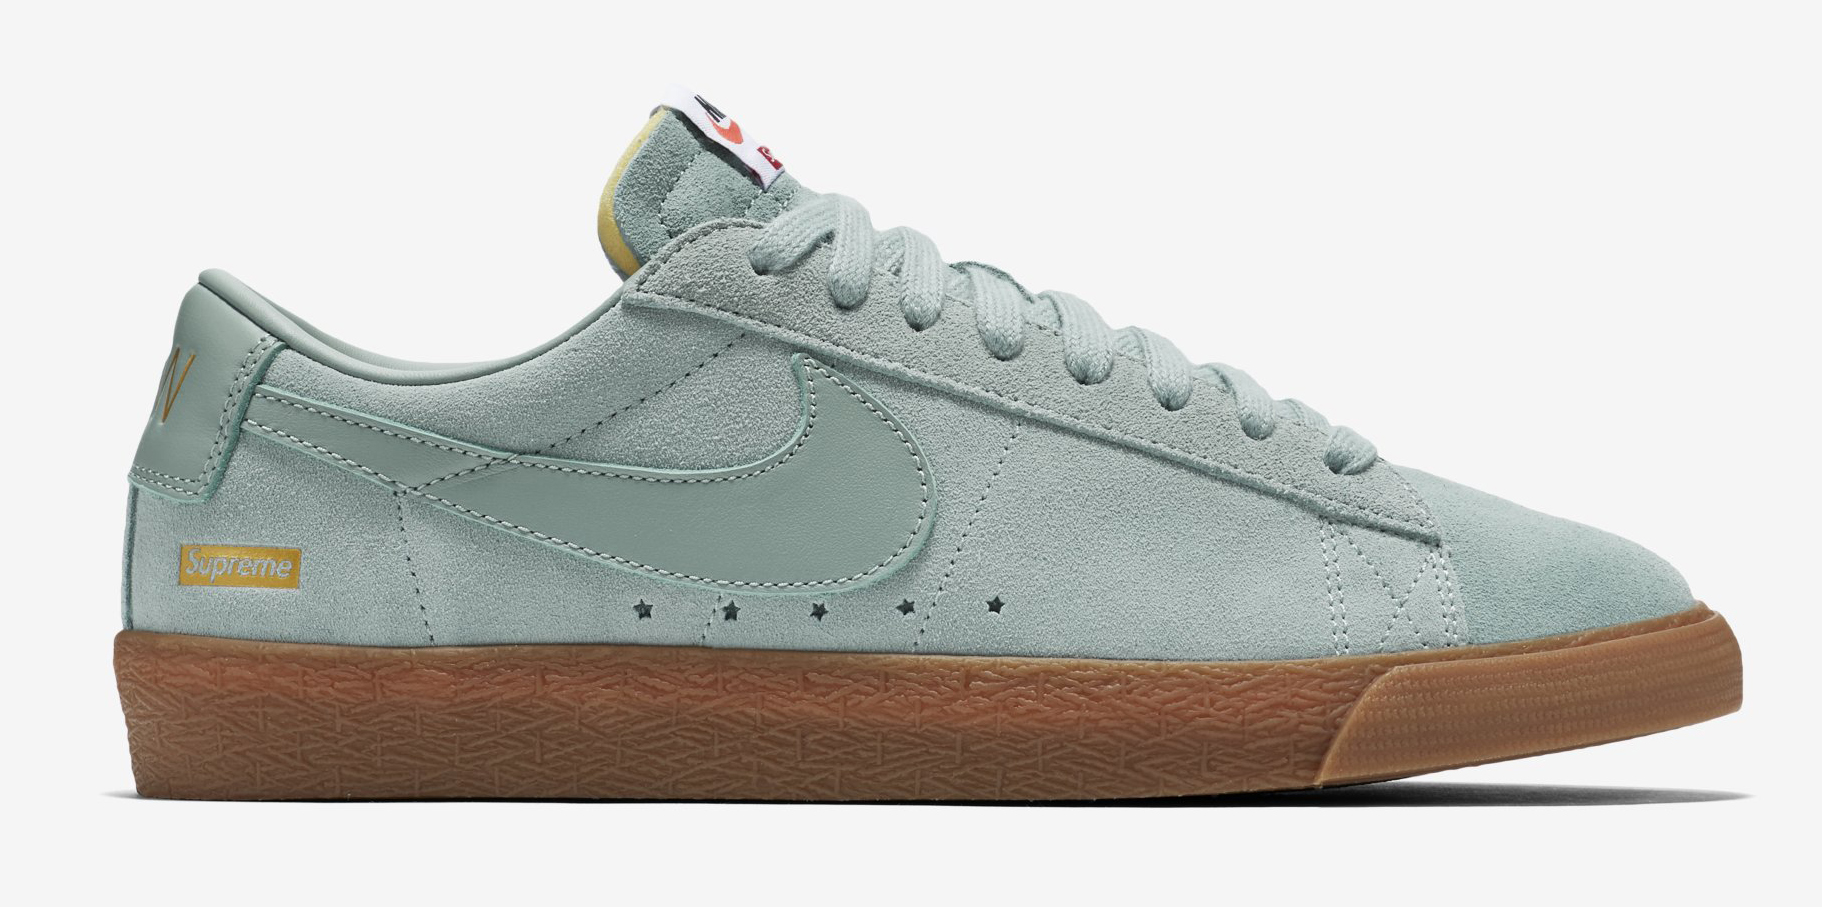 online store 0d5f2 23b2d Supreme Nike SB Blazer Low Nike Online Release | Sole Collector